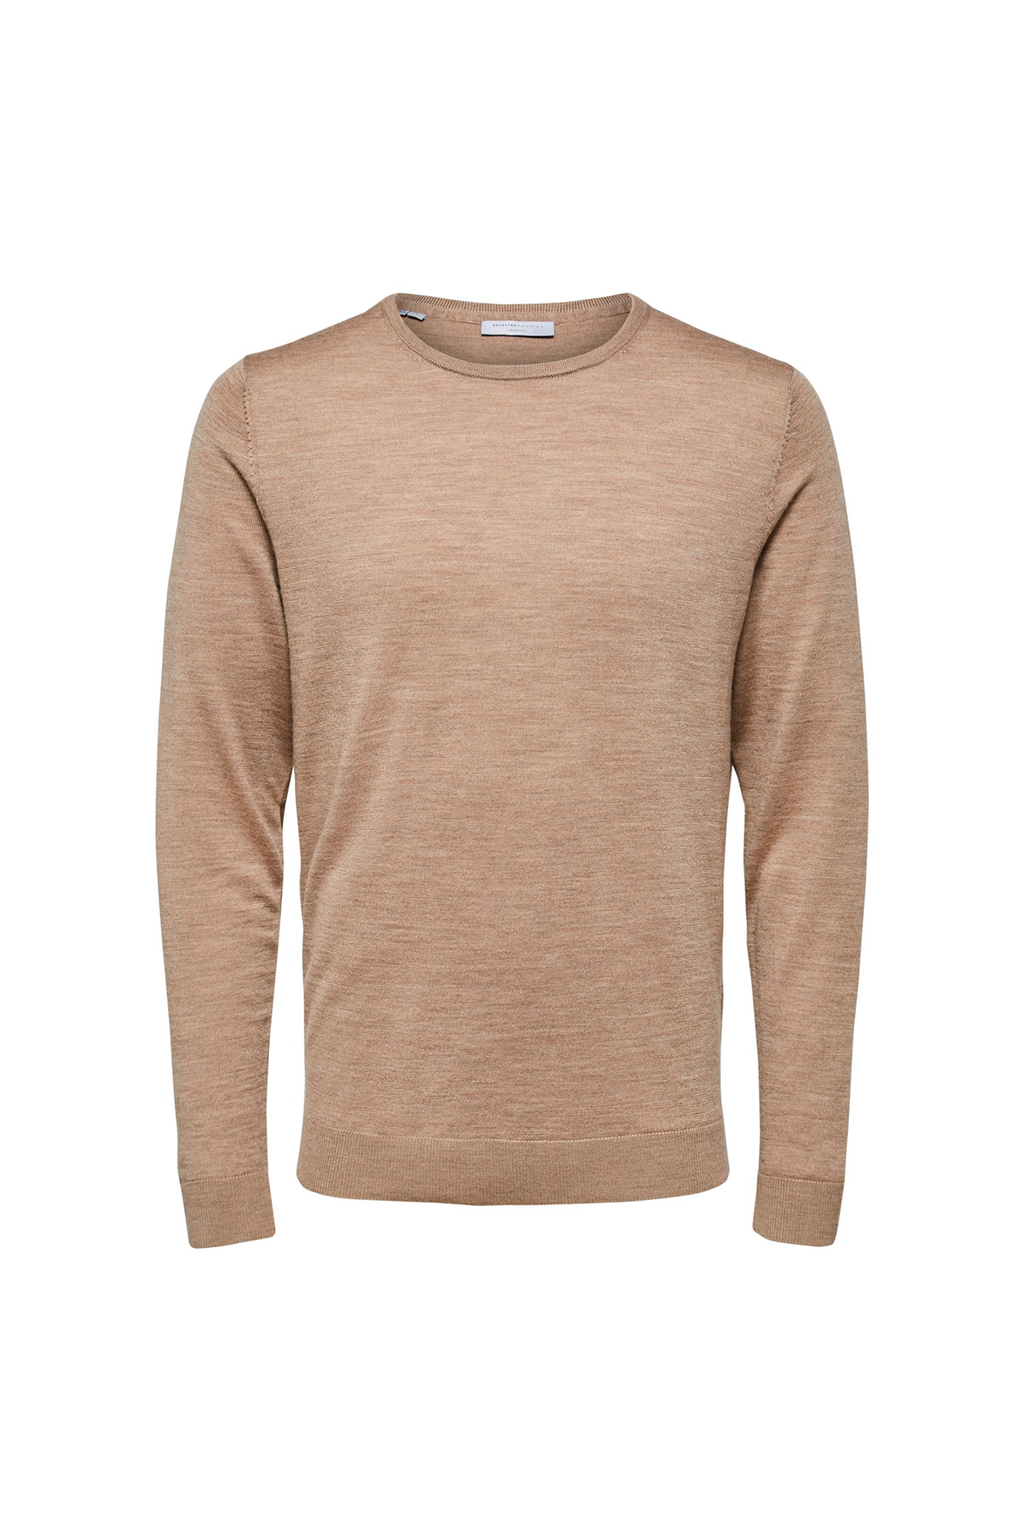 Tower Merino Crew Neck - Tuffet